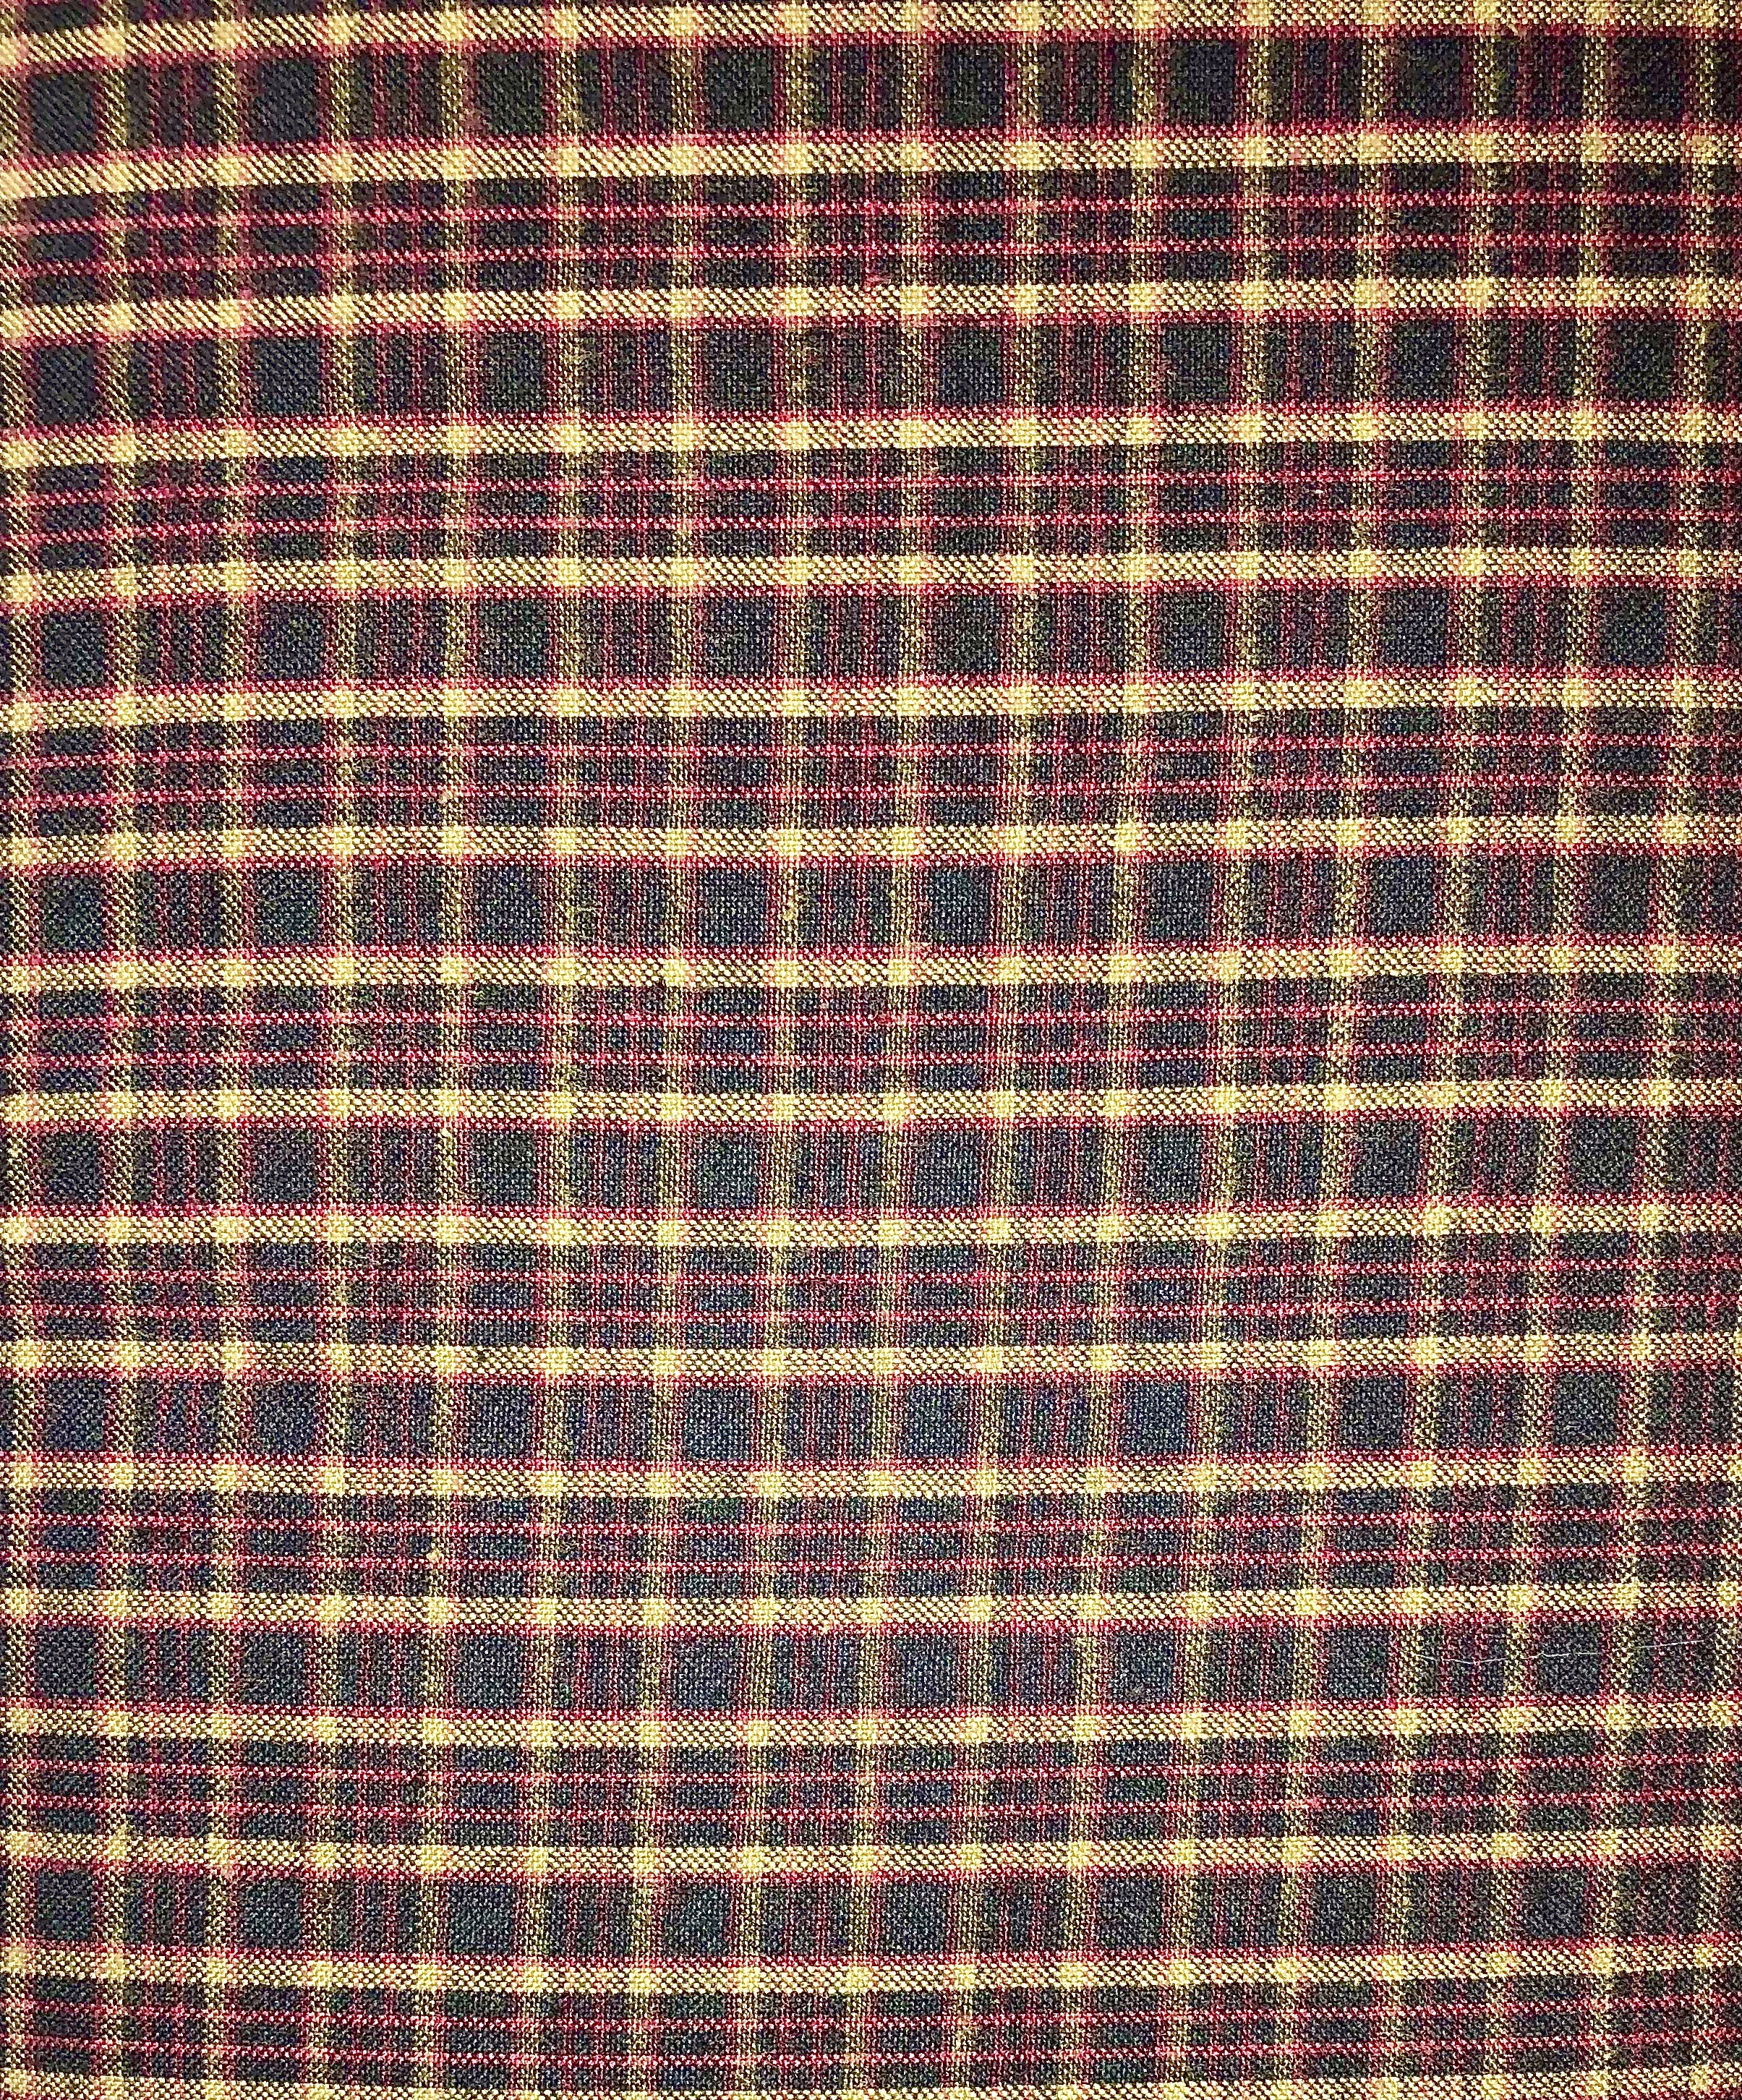 Yarn Dyed Flannel - Tan & Black Plaid - 1/2m cut 55171